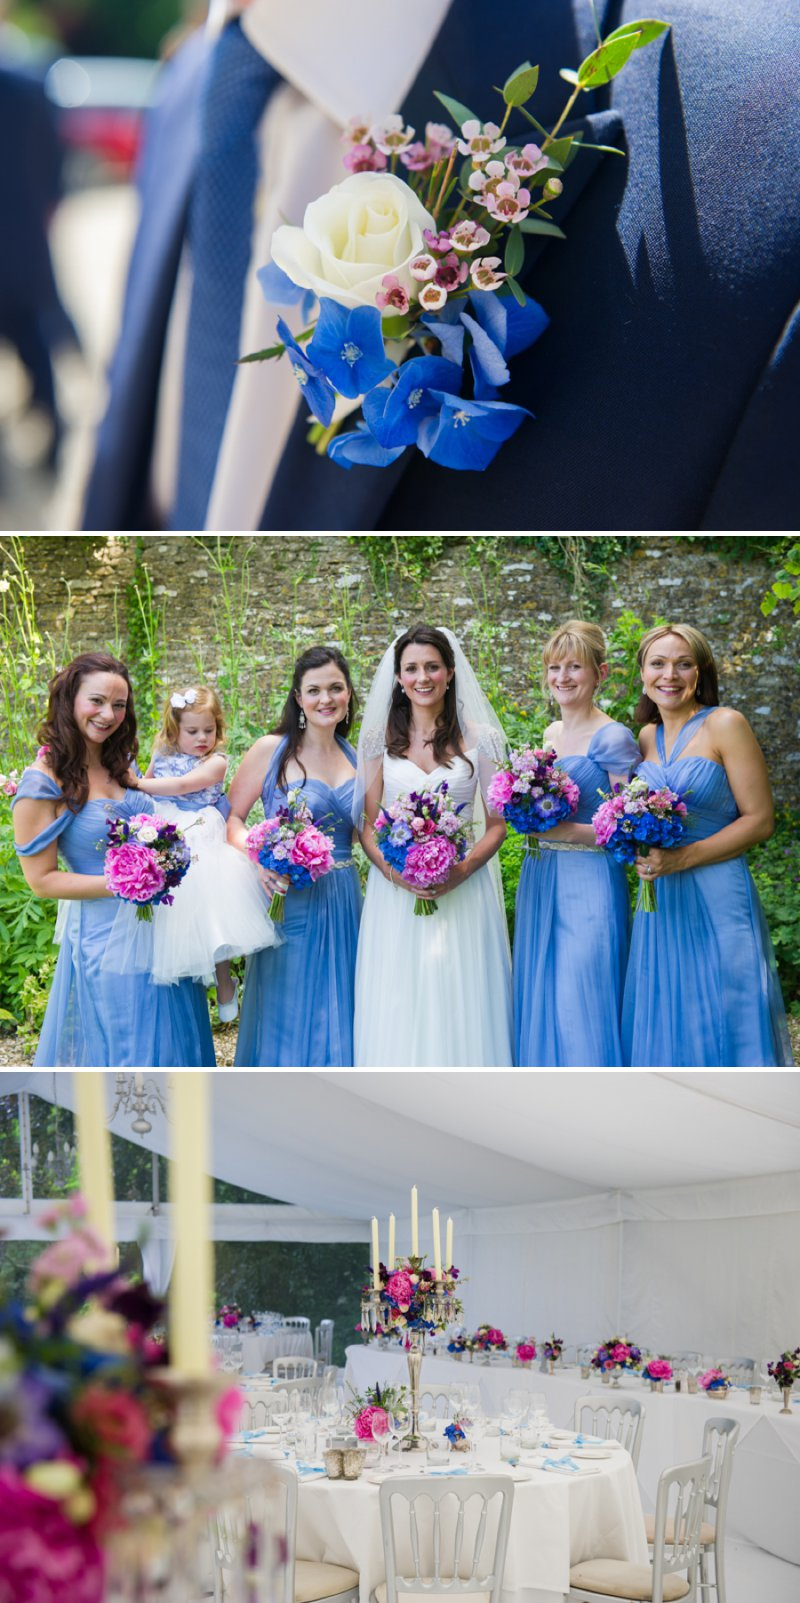 Traditional White Wedding At The Rectory In Wiltshire With Bride In Bespoke Gown And Vibrant Blue Hydrangeas And Hot Pink Peonies In Wedding Flowers 3